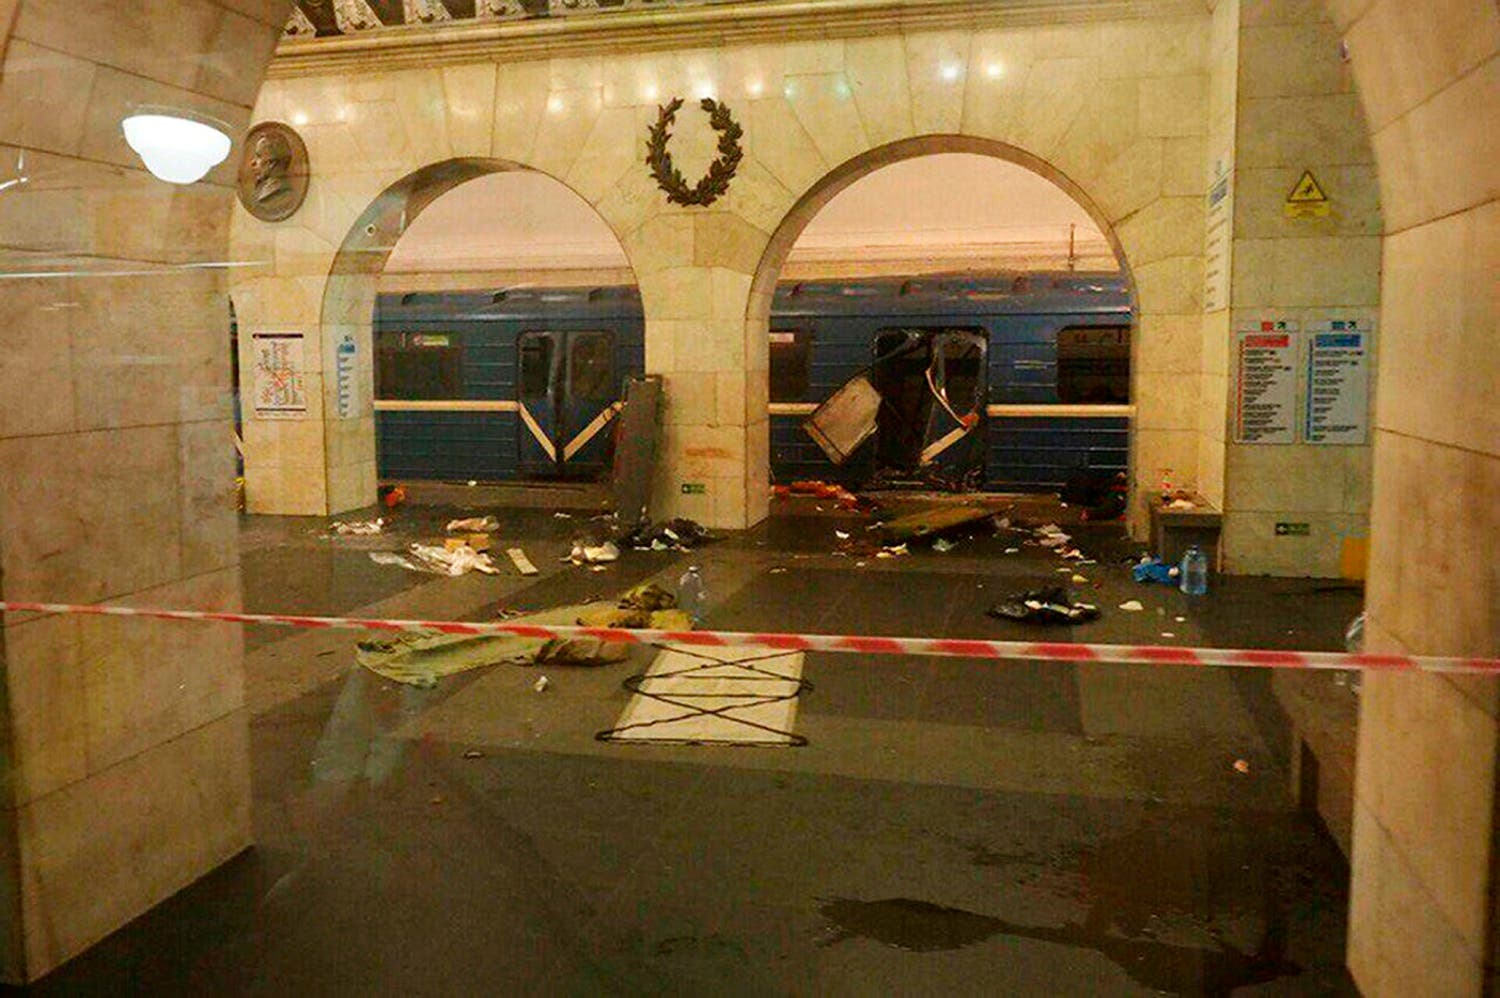 A subway train hit by an explosion stays at the Tekhnologichesky Institut subway station in St.Petersburg, Russia, Monday, April 3, 2017 (Photo: AP/www.vk.com/spb_today via AP)